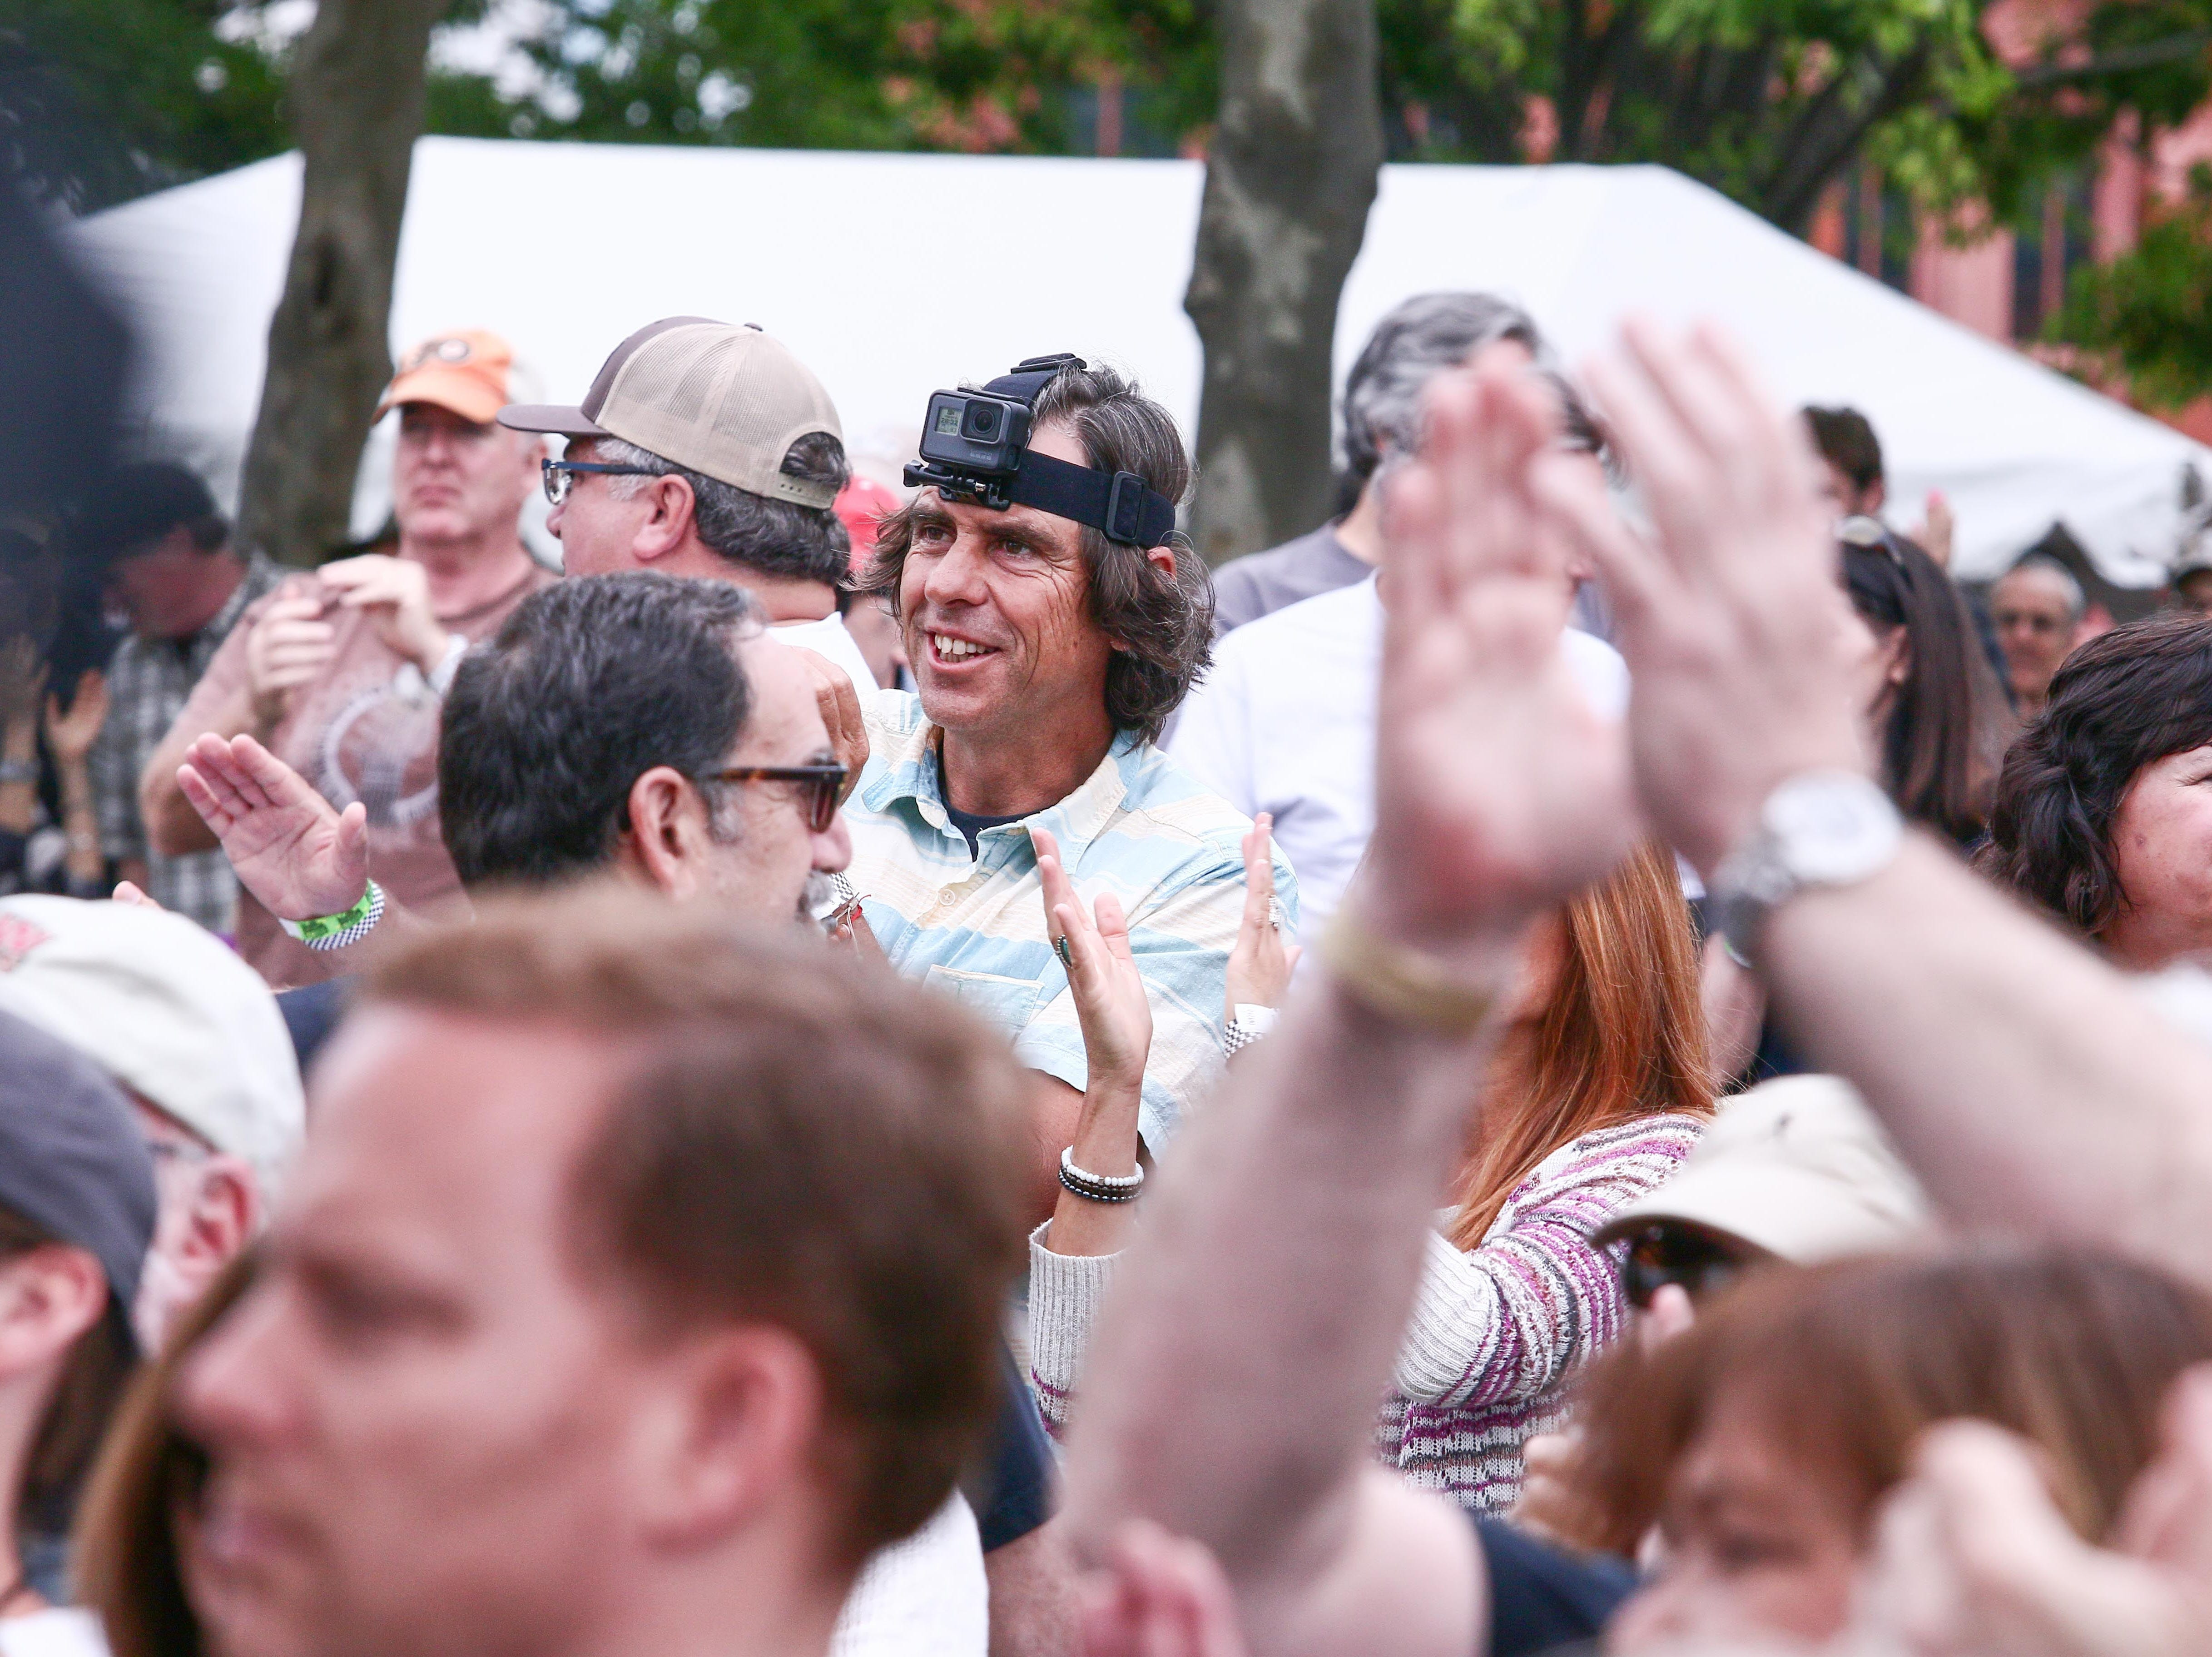 A crowd of 3,000 enjoys themselves at Bromberg's Big Noise on Saturday, May 20, 2017, at Tubman Garrett Park in Wilmington.